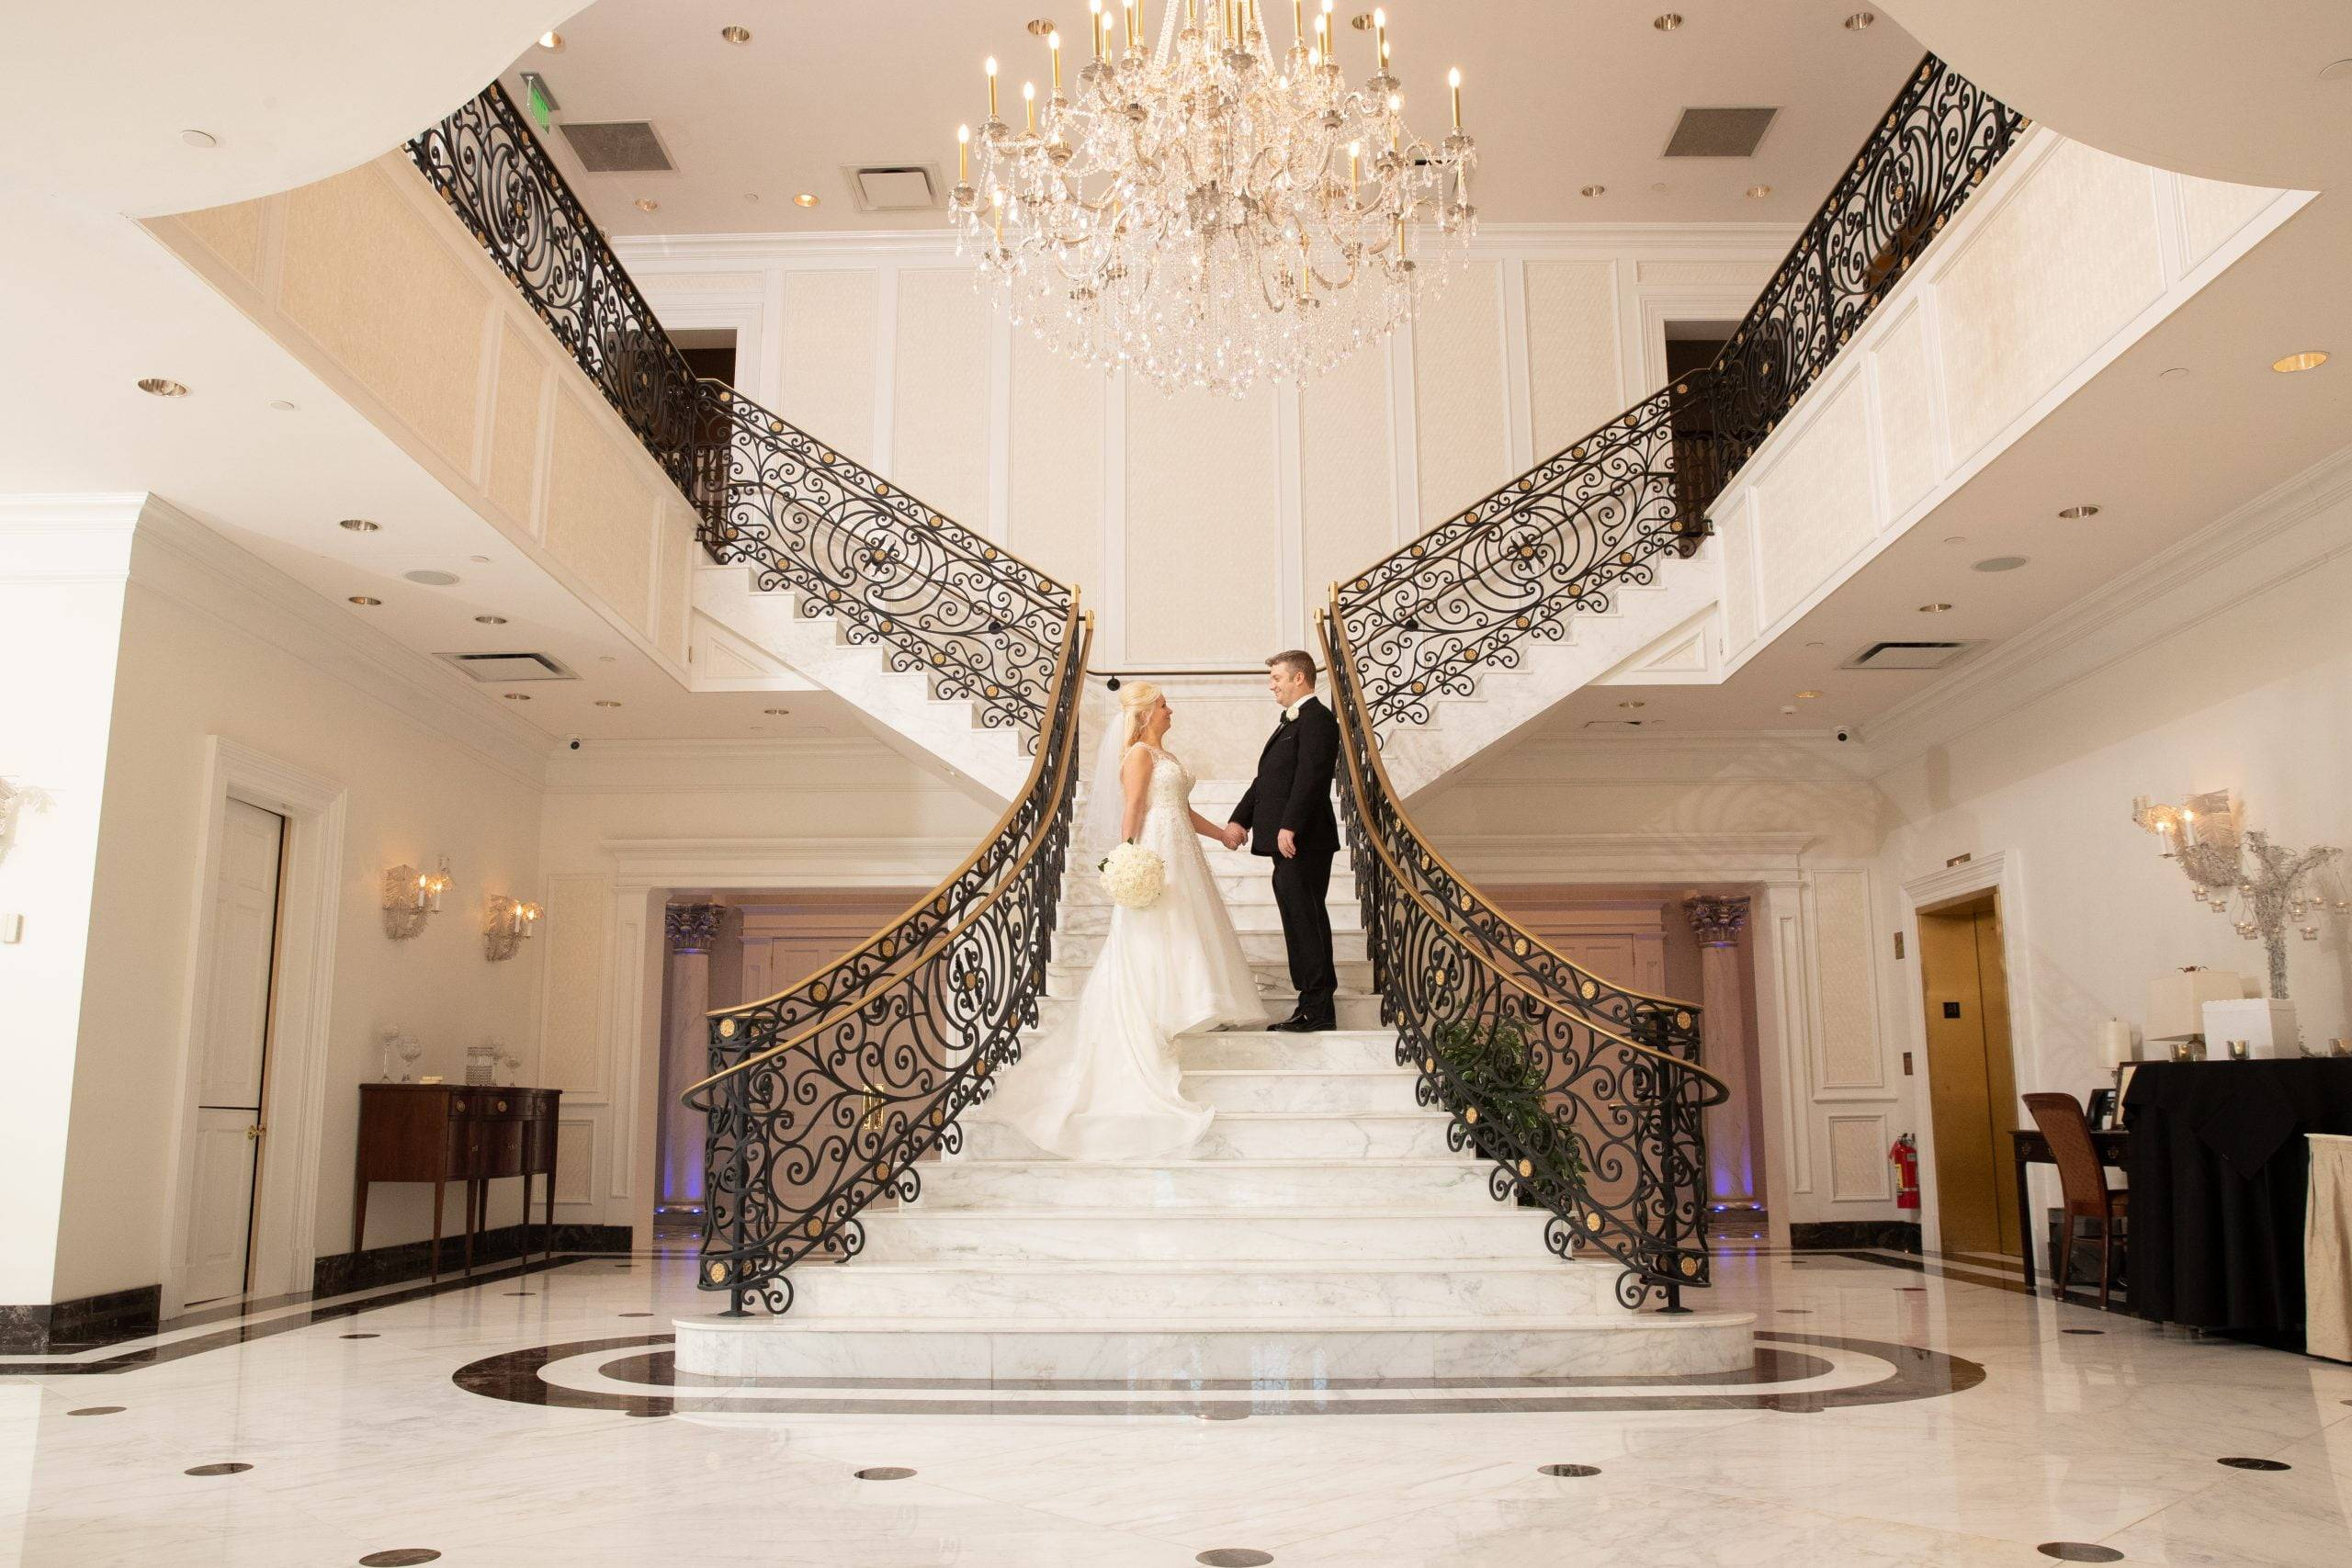 Meadow Wood bride and groom centered on staircase